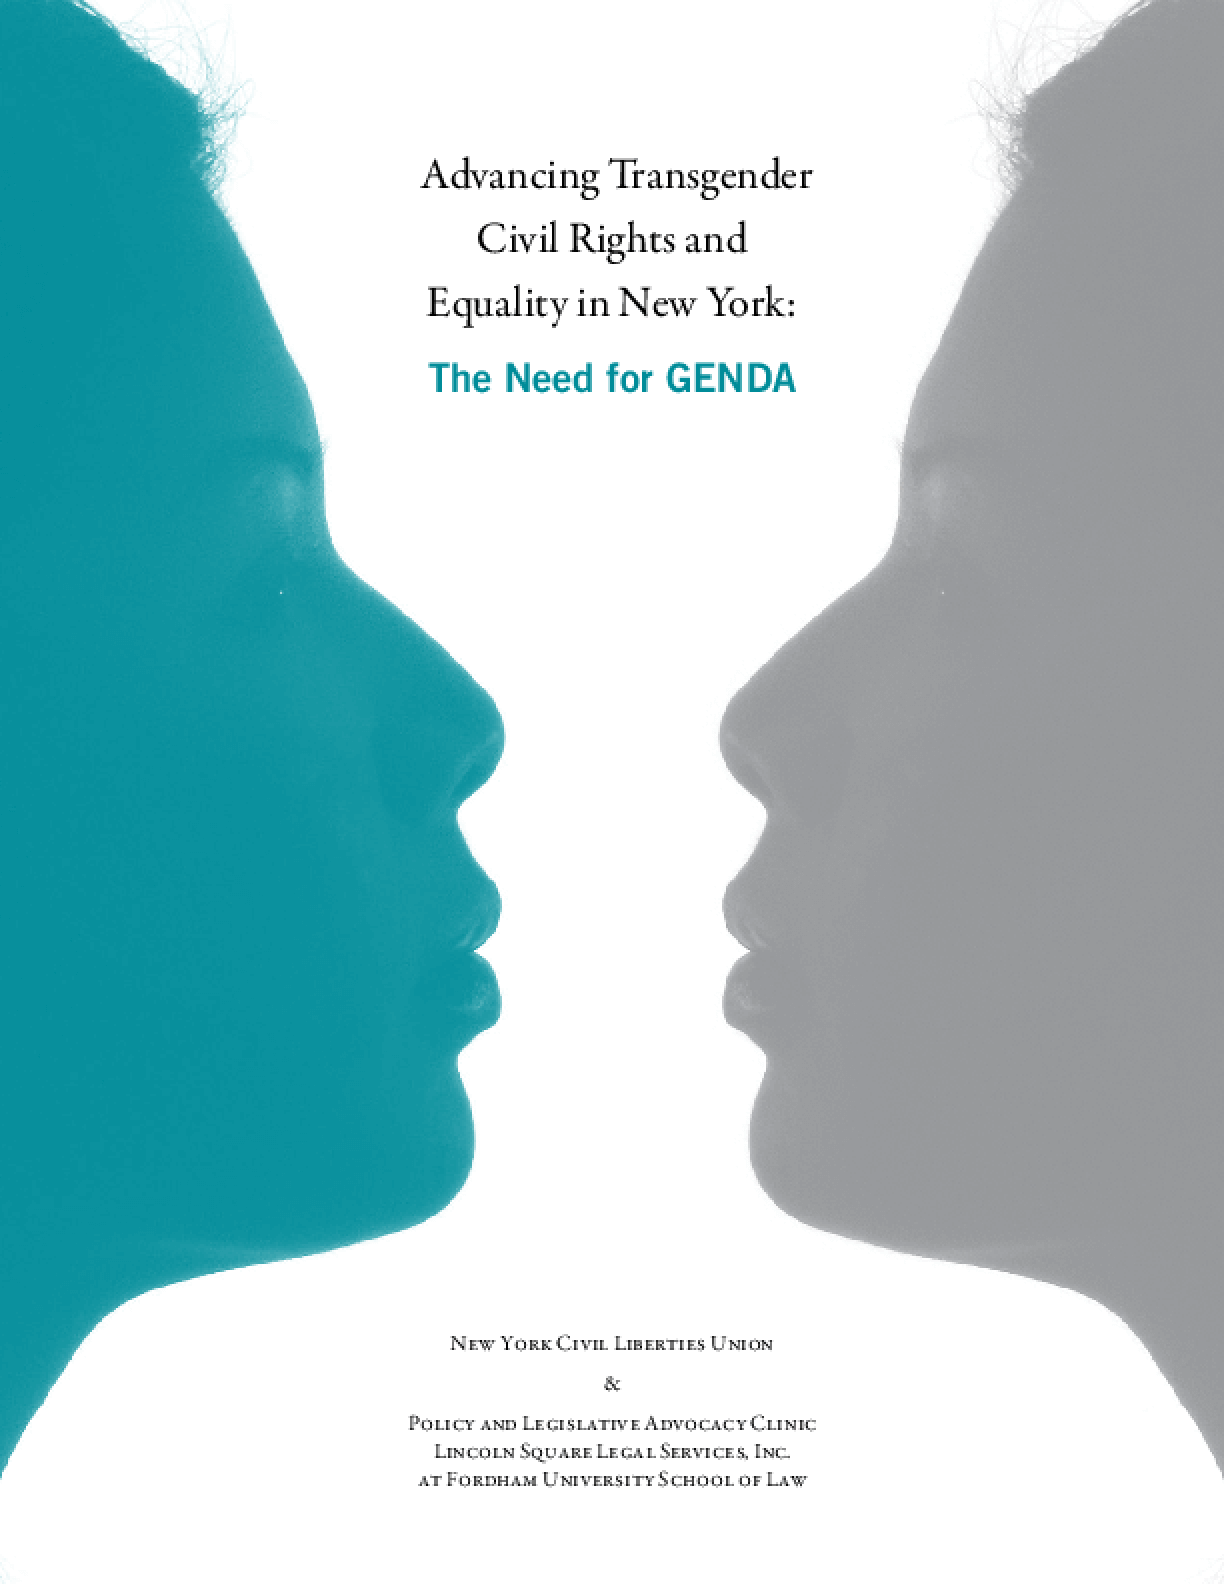 Advancing Transgender Civil Rights in New York: The Need for GENDA